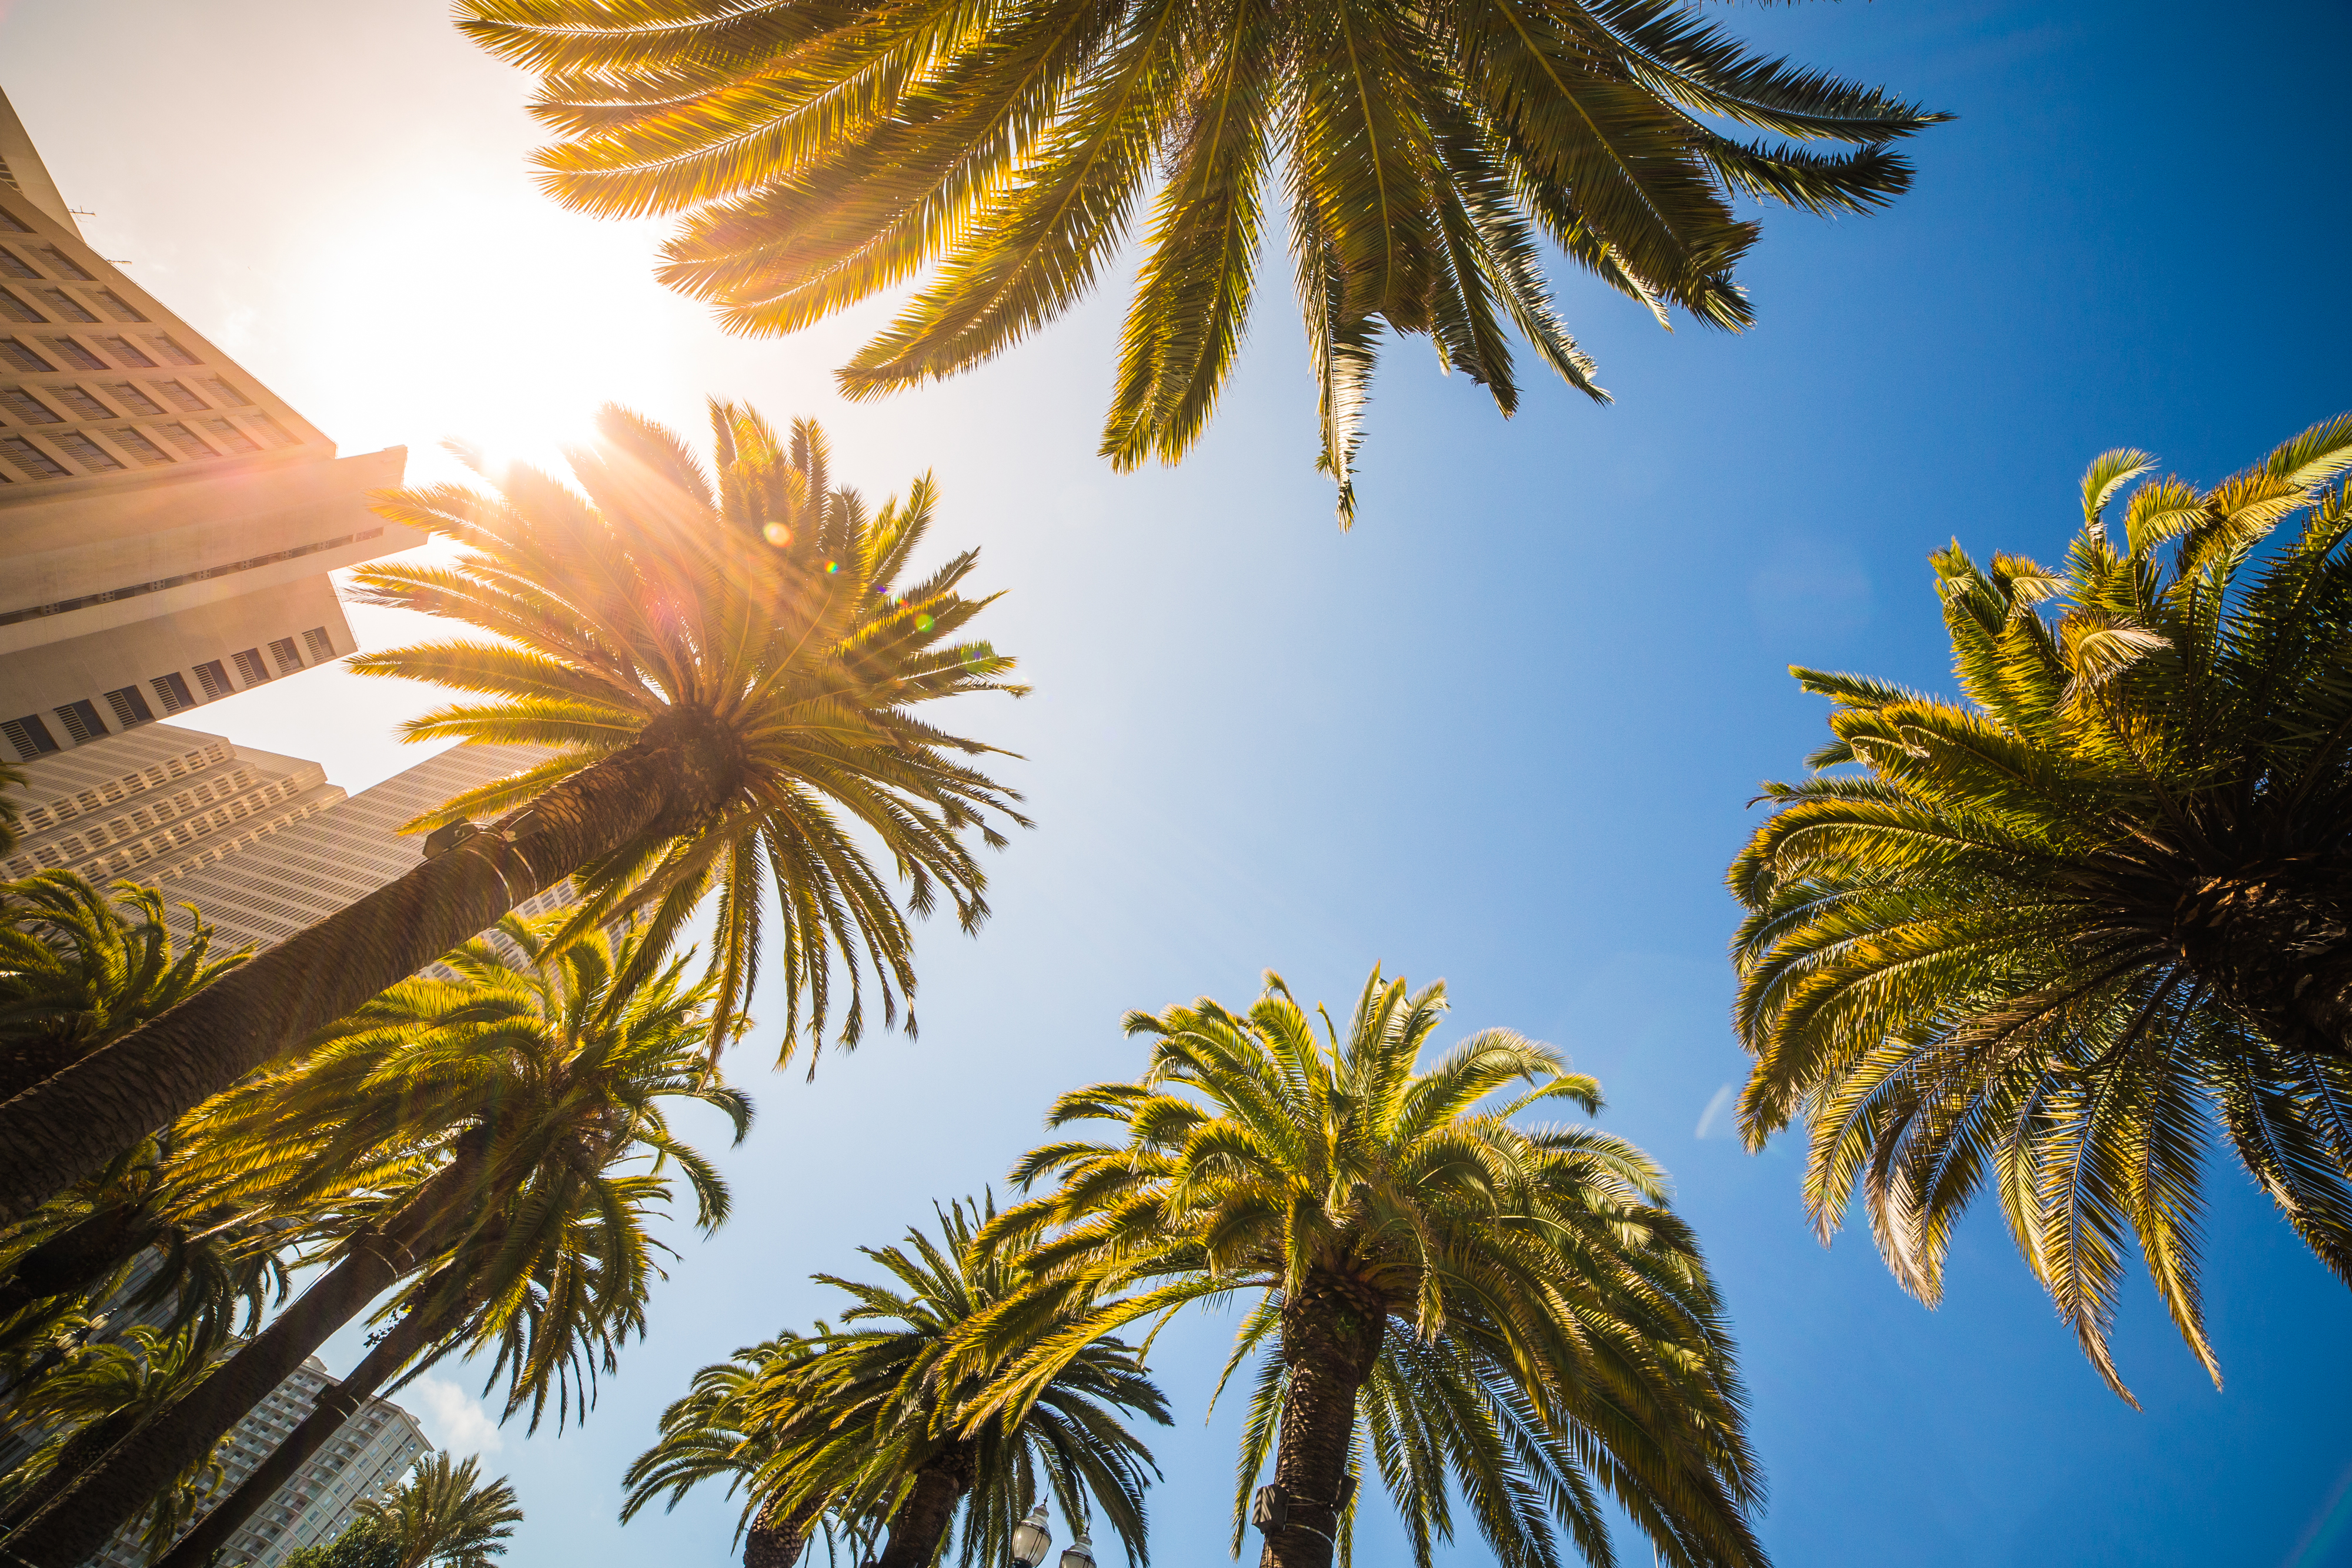 Free stock photos of palm trees pexels green leaf palm trees near white structure voltagebd Images